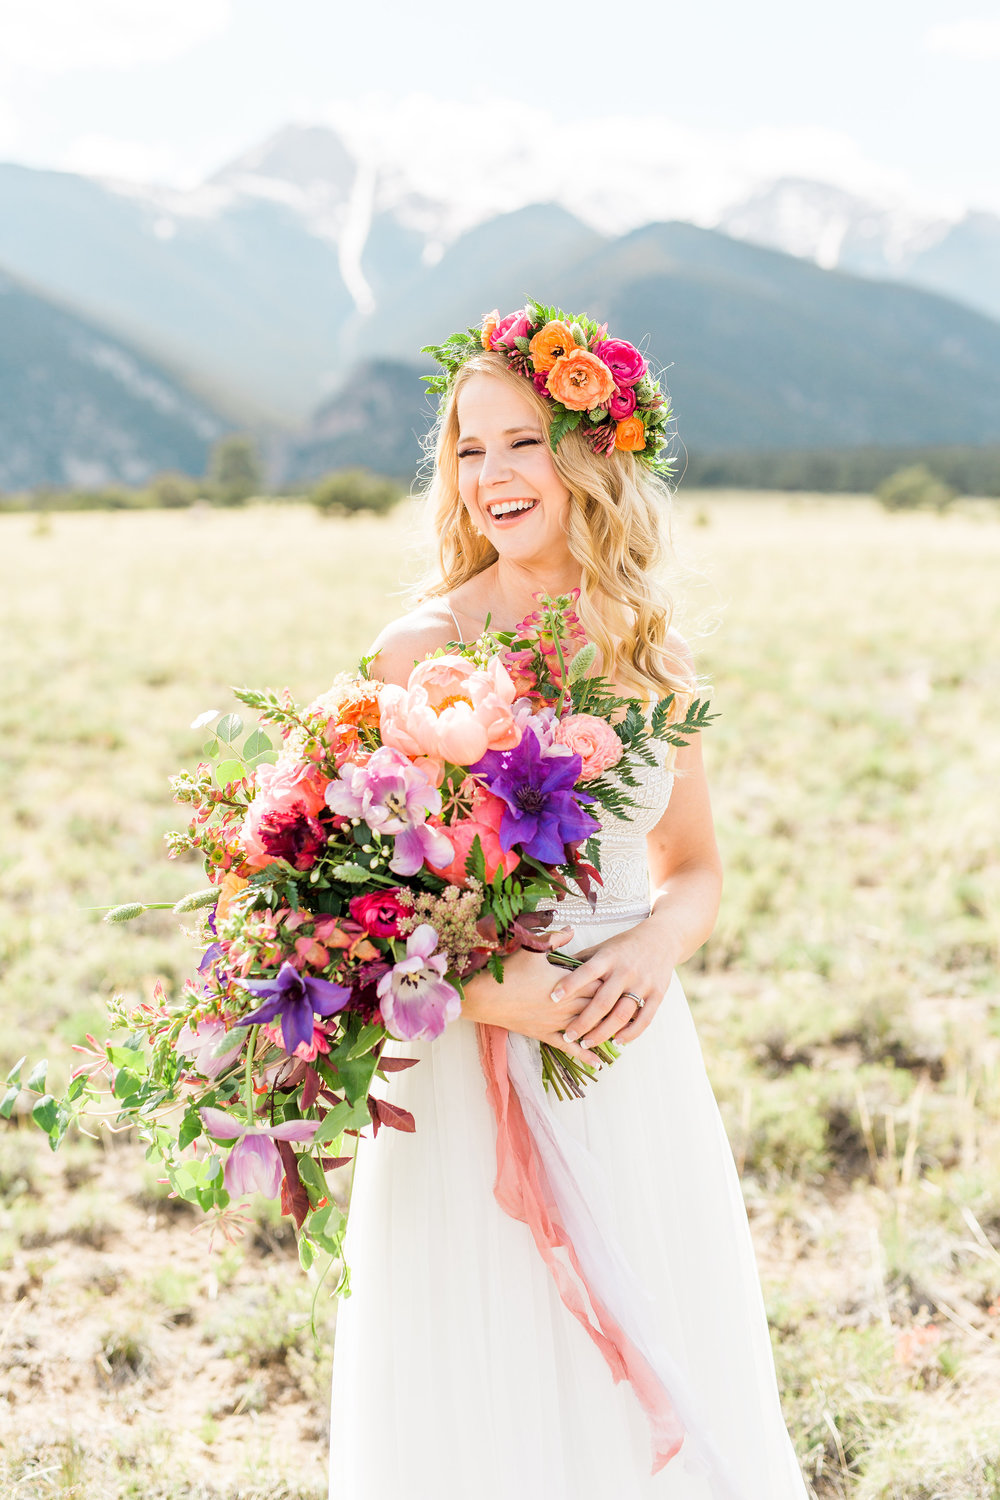 Emma Lea Floral - Sarah Jayne Photography- Colorado Mountain Wedding